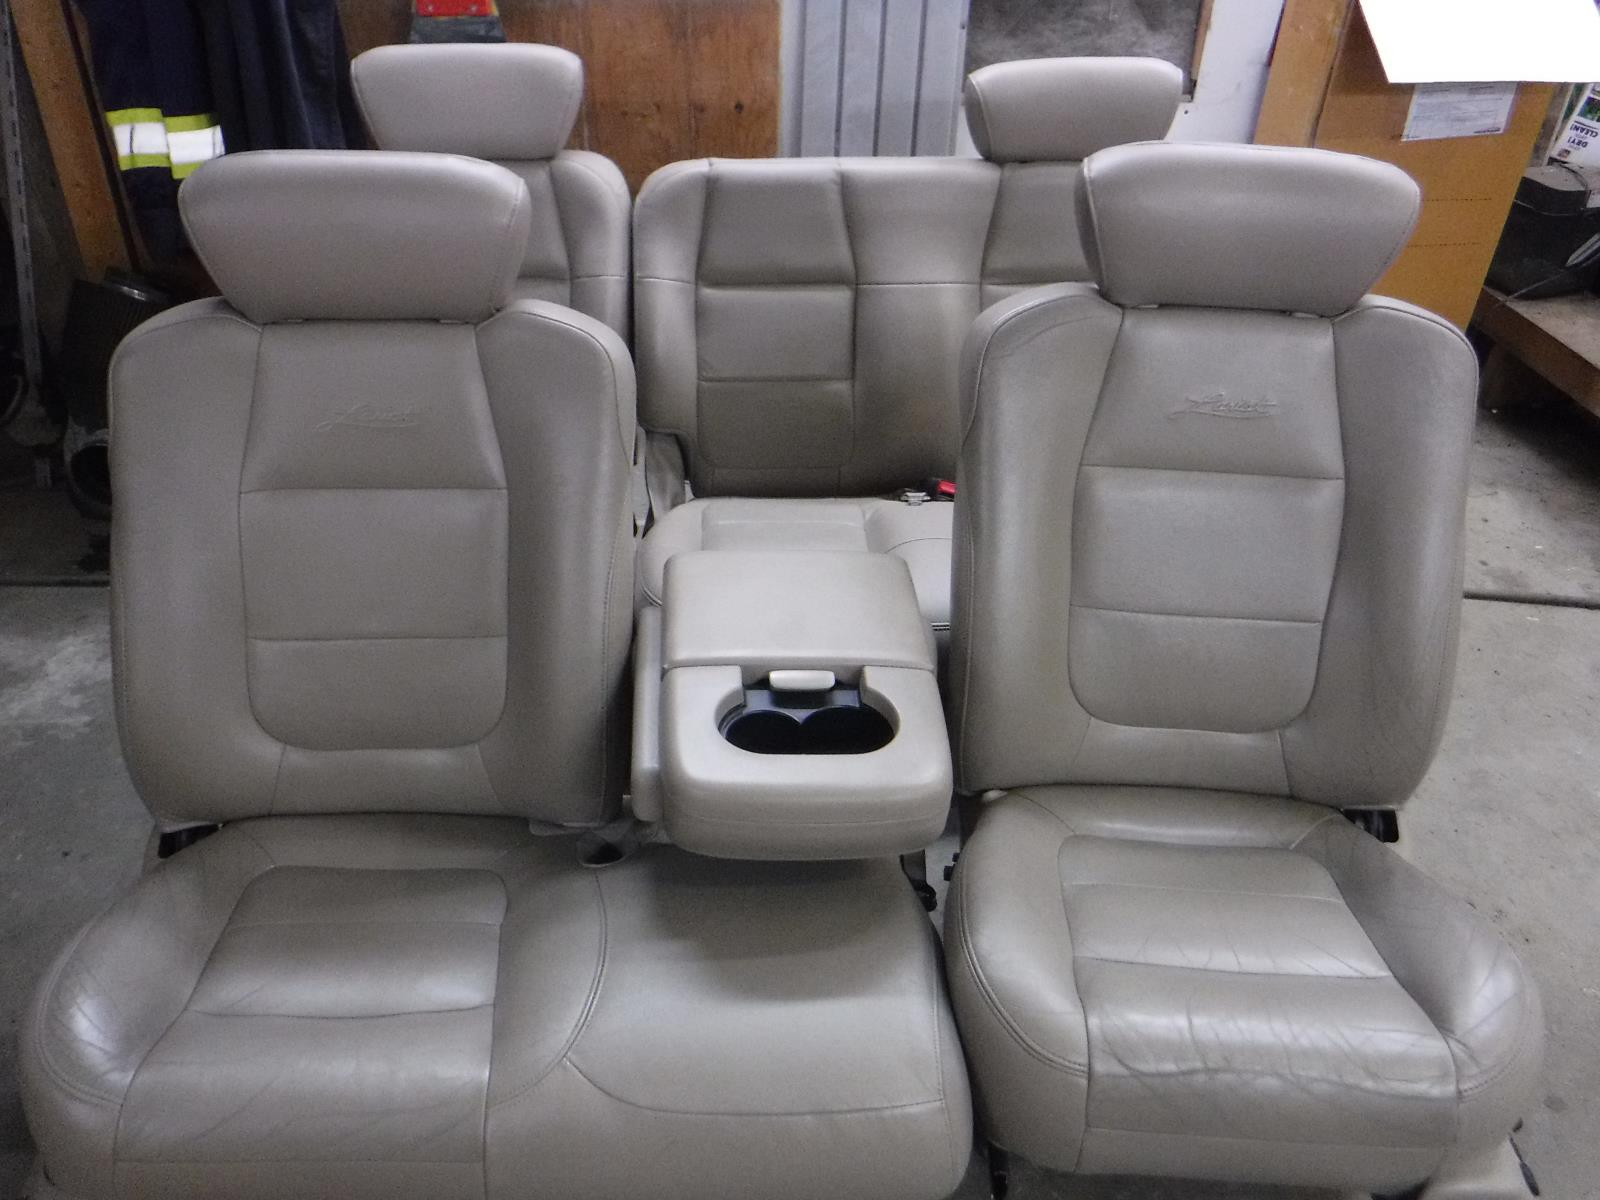 Phenomenal Details About 1998 2003 Ford F150 Lariat Tan Leather Seats Crew Cab Power Heat Free Ship Oem Pabps2019 Chair Design Images Pabps2019Com